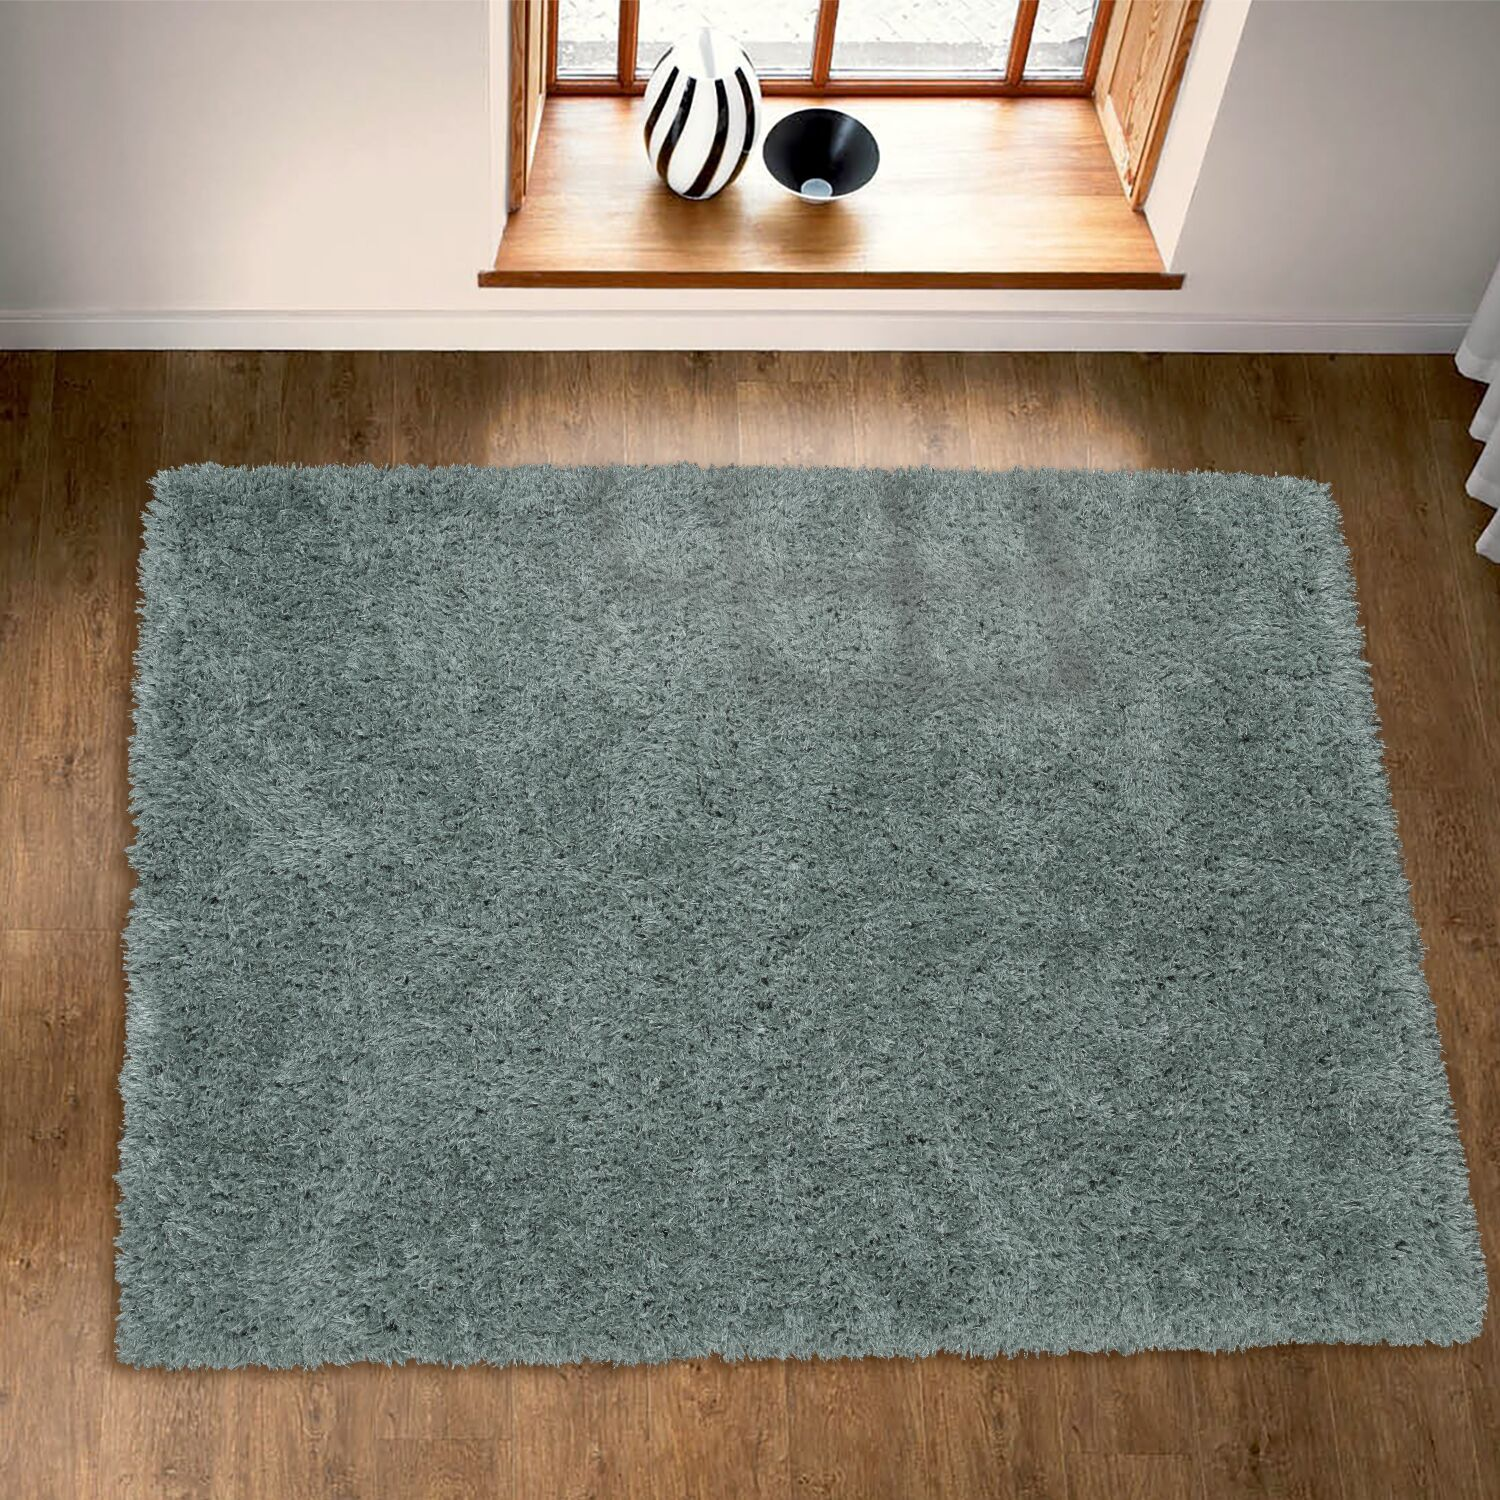 Costantino Fuzzy High Pile Sage Green Area Rug Rug Size: Rectangle 5'3